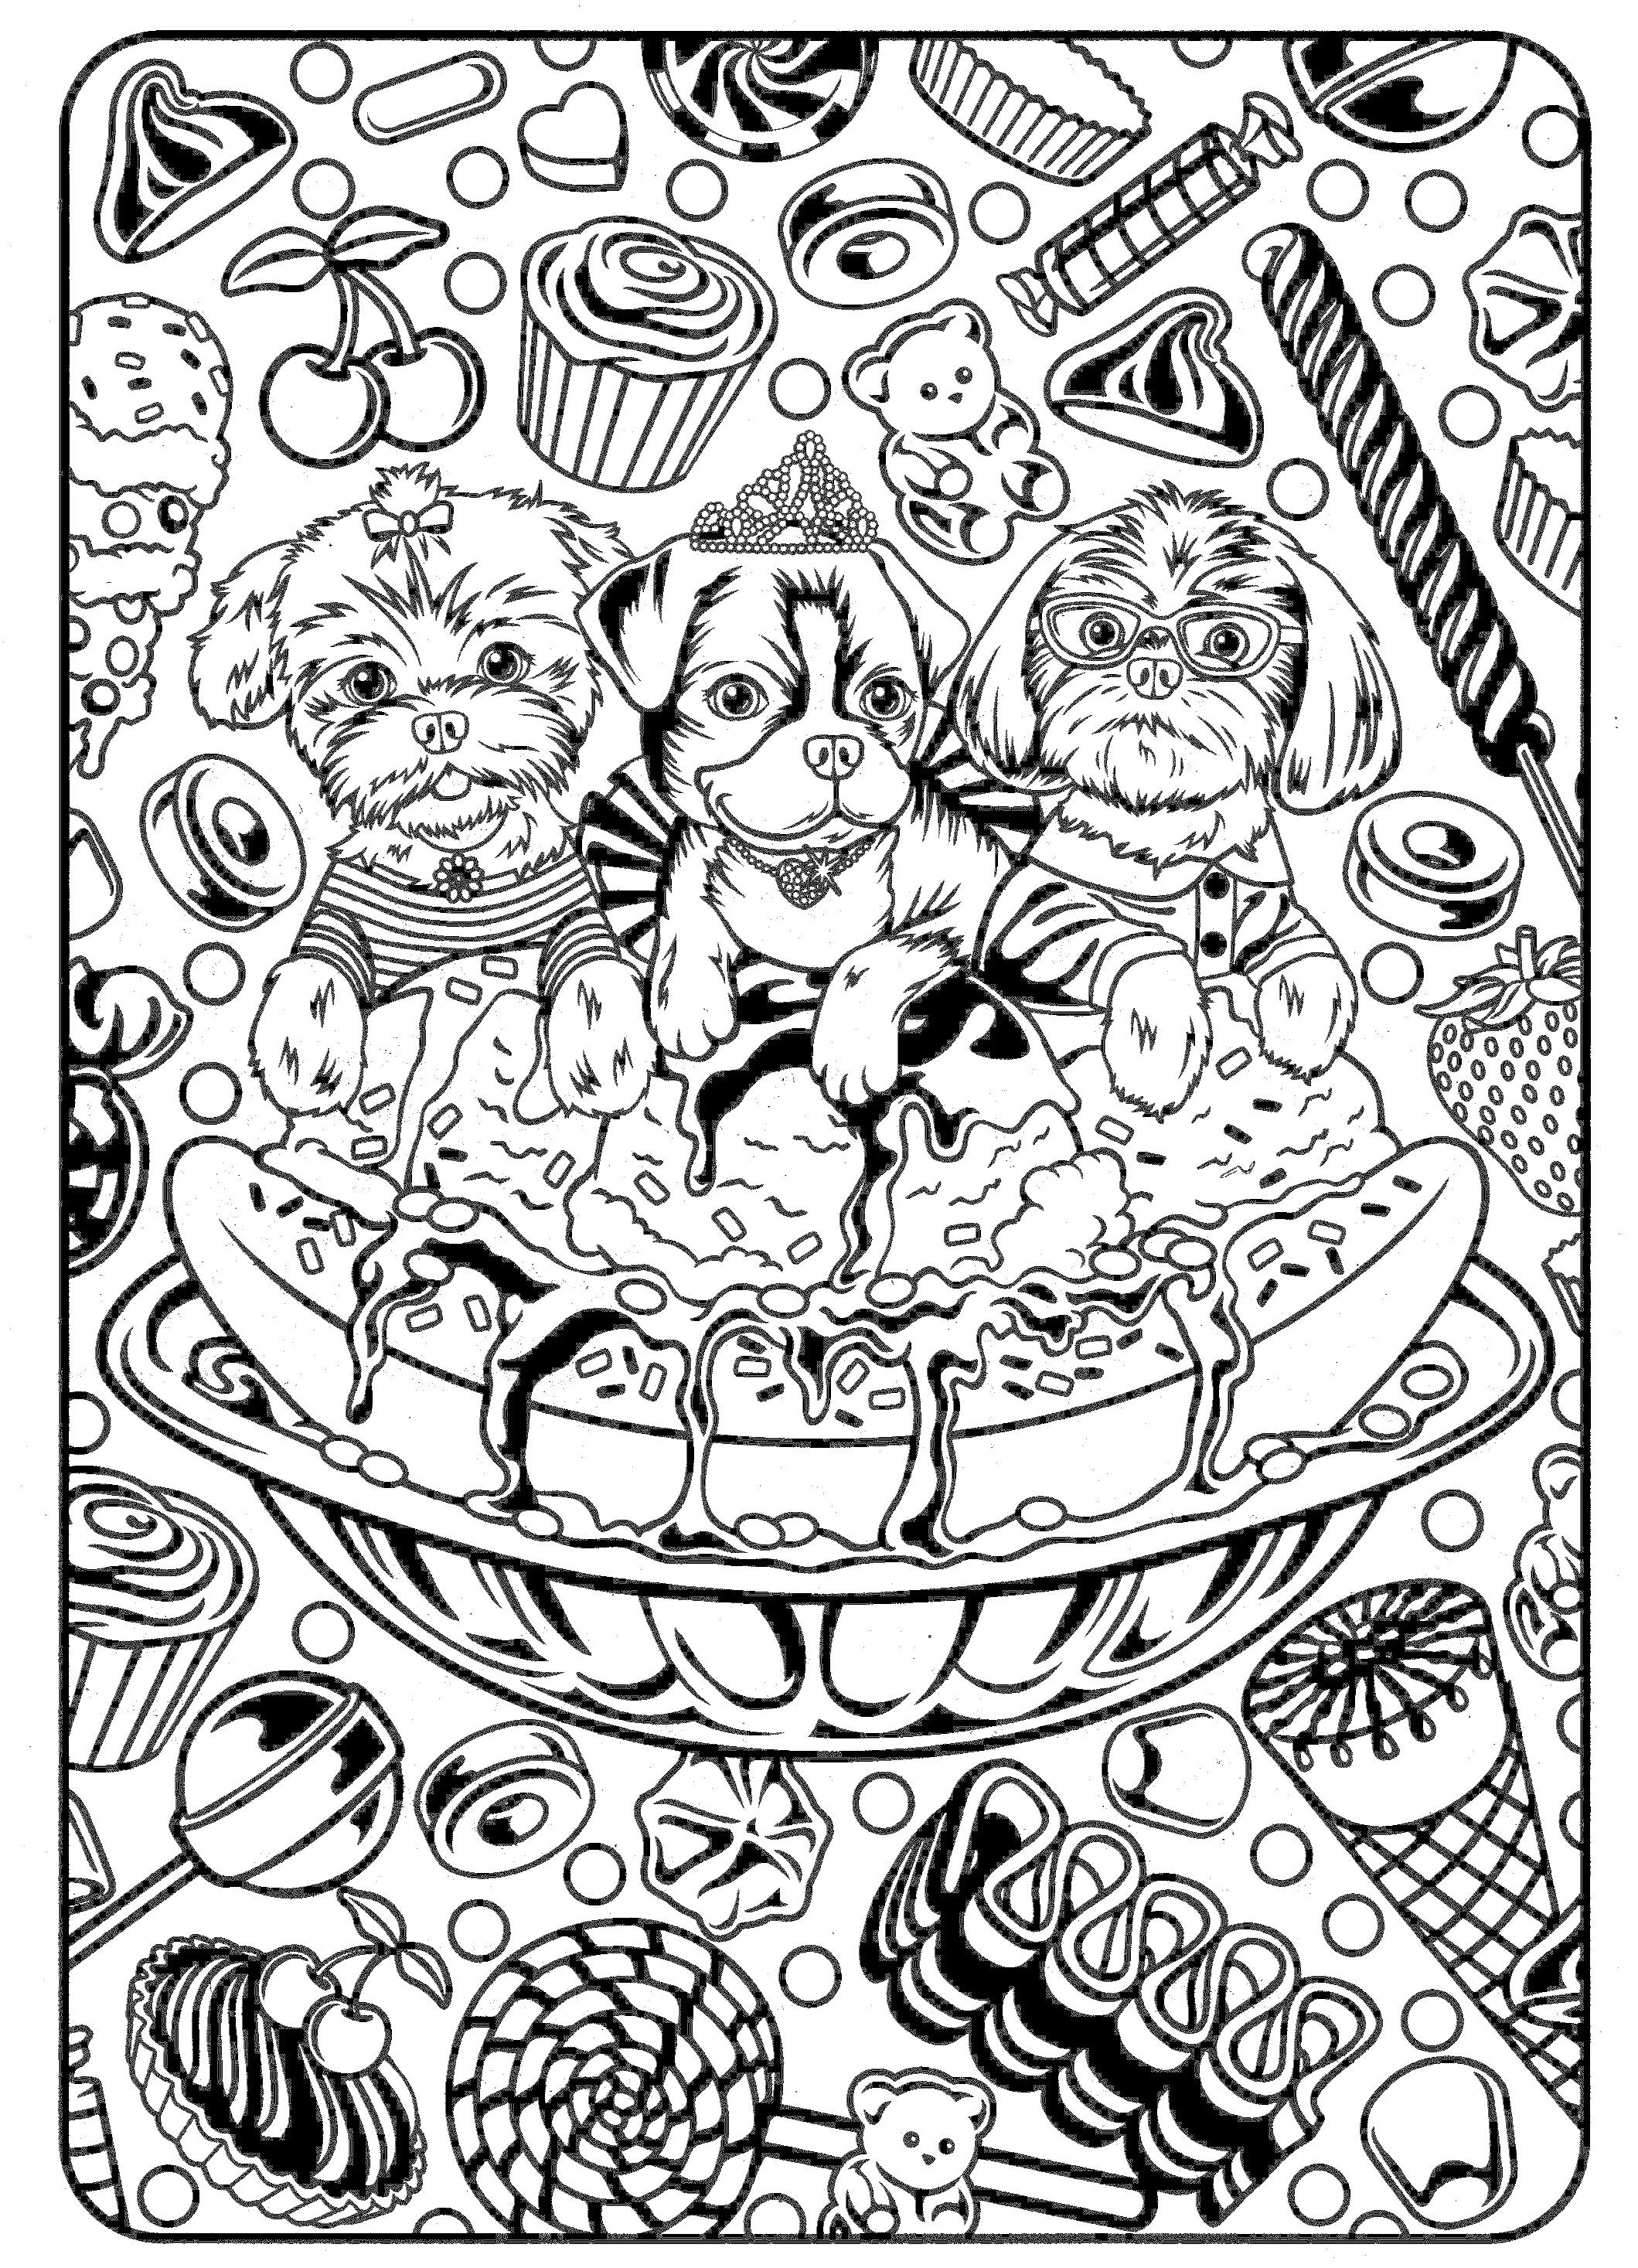 Mobile shimmer and shine coloring games coloring pages ausmalbilder - Lisa Frank Coloring Pages